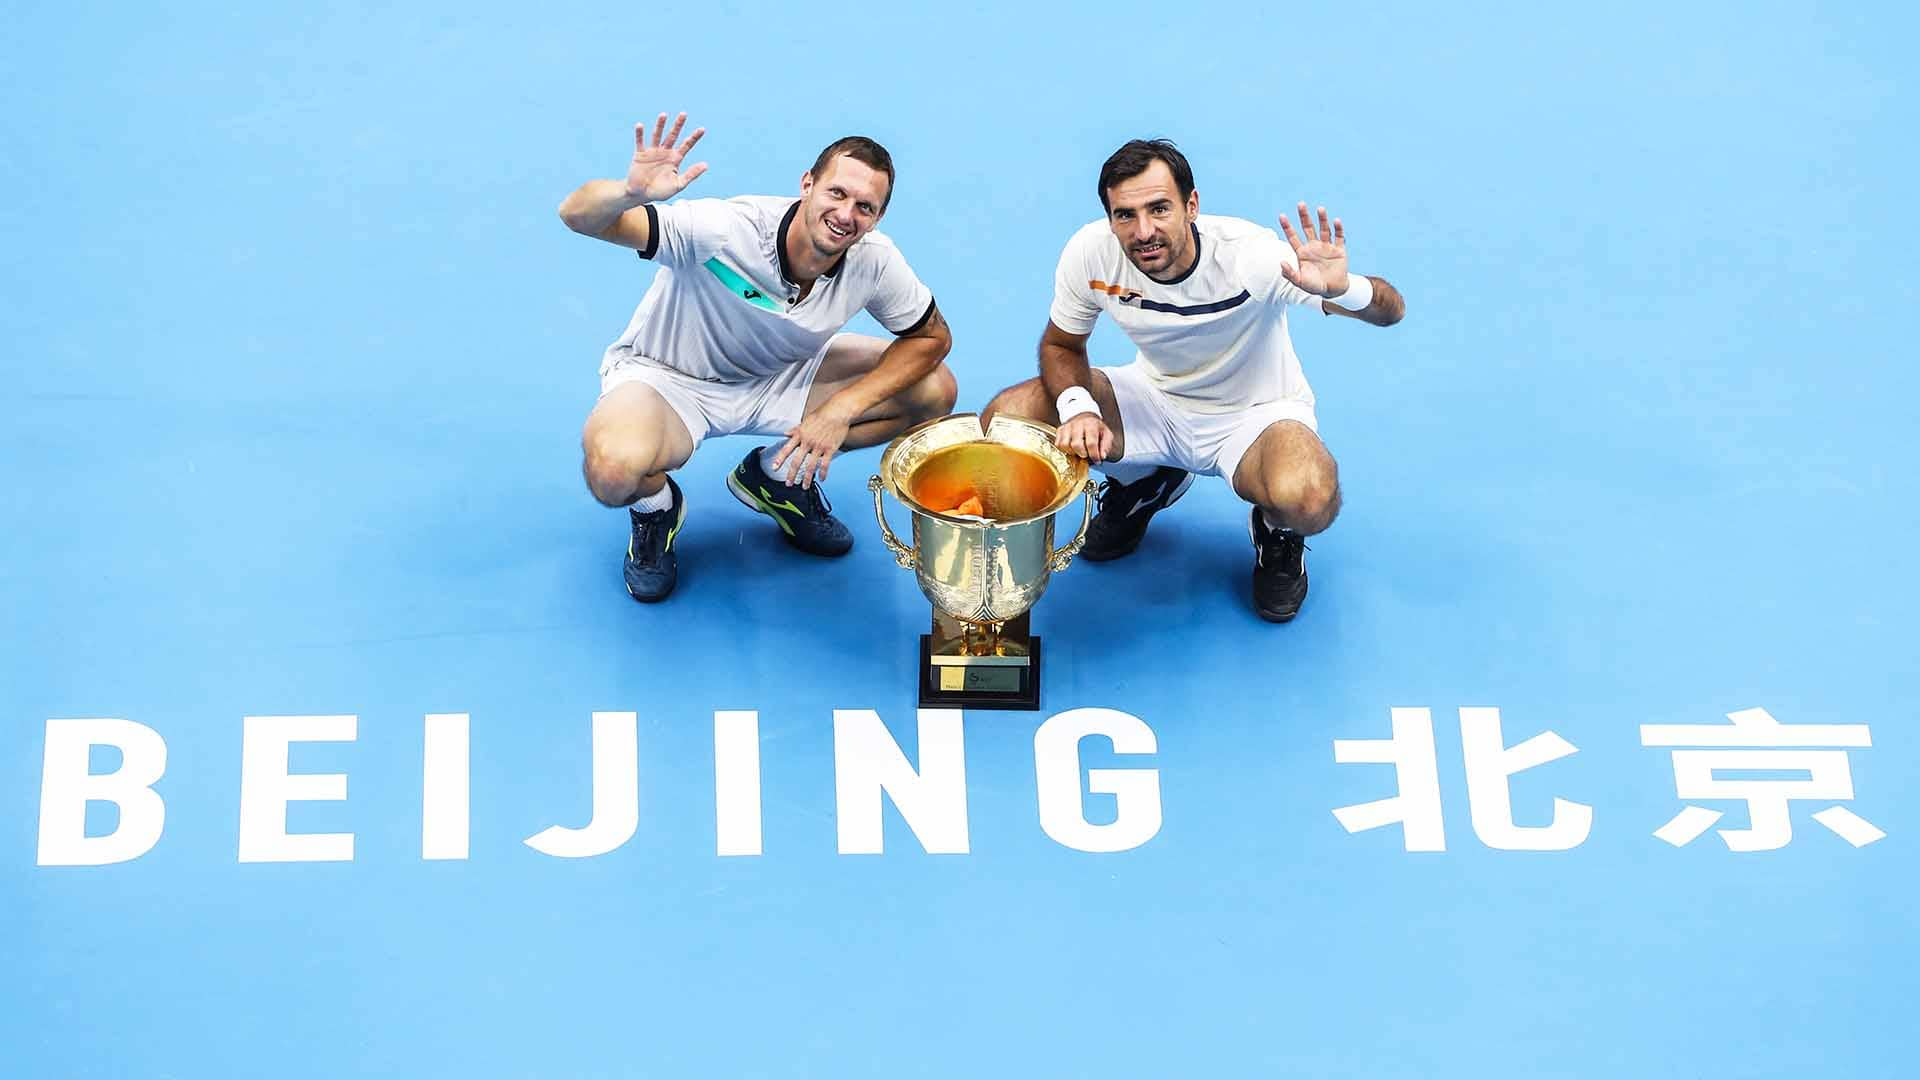 Filip Polasek and Ivan Dodig improve to 2-1 in ATP Tour finals as a team.